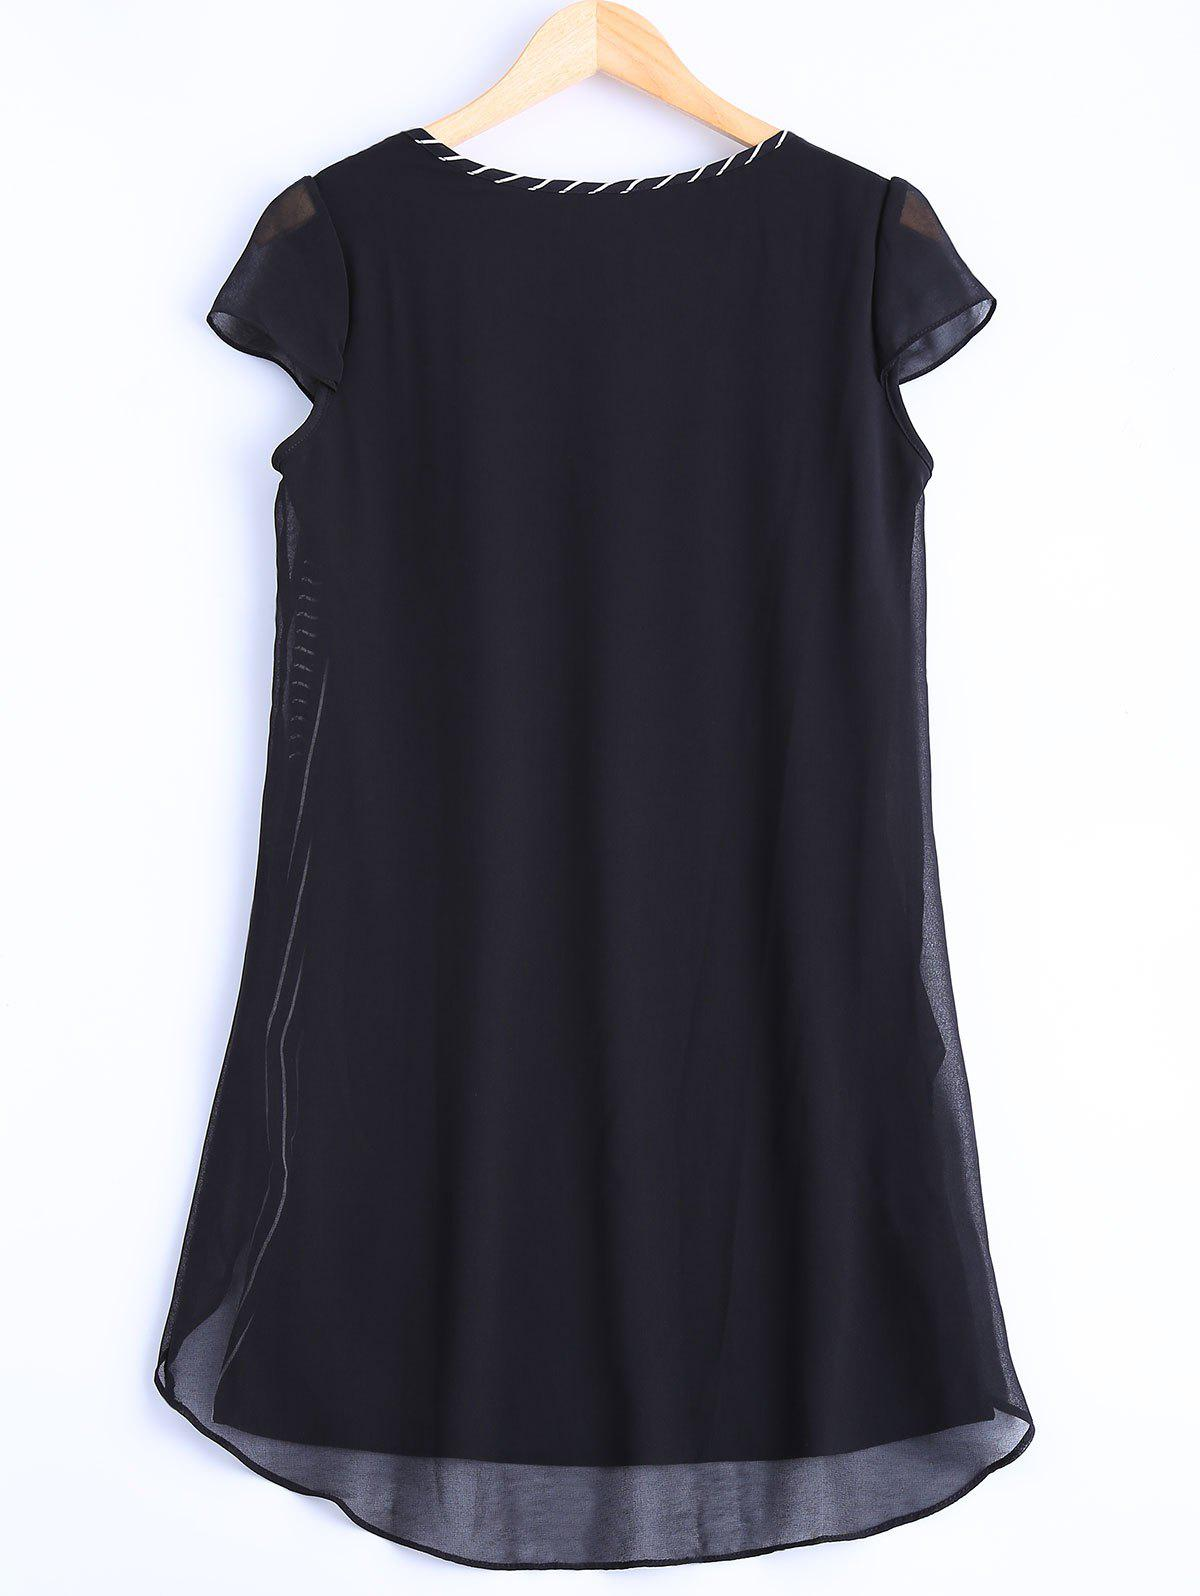 Oversized Chic Striped Chiffon Spliced Blouse - BLACK L